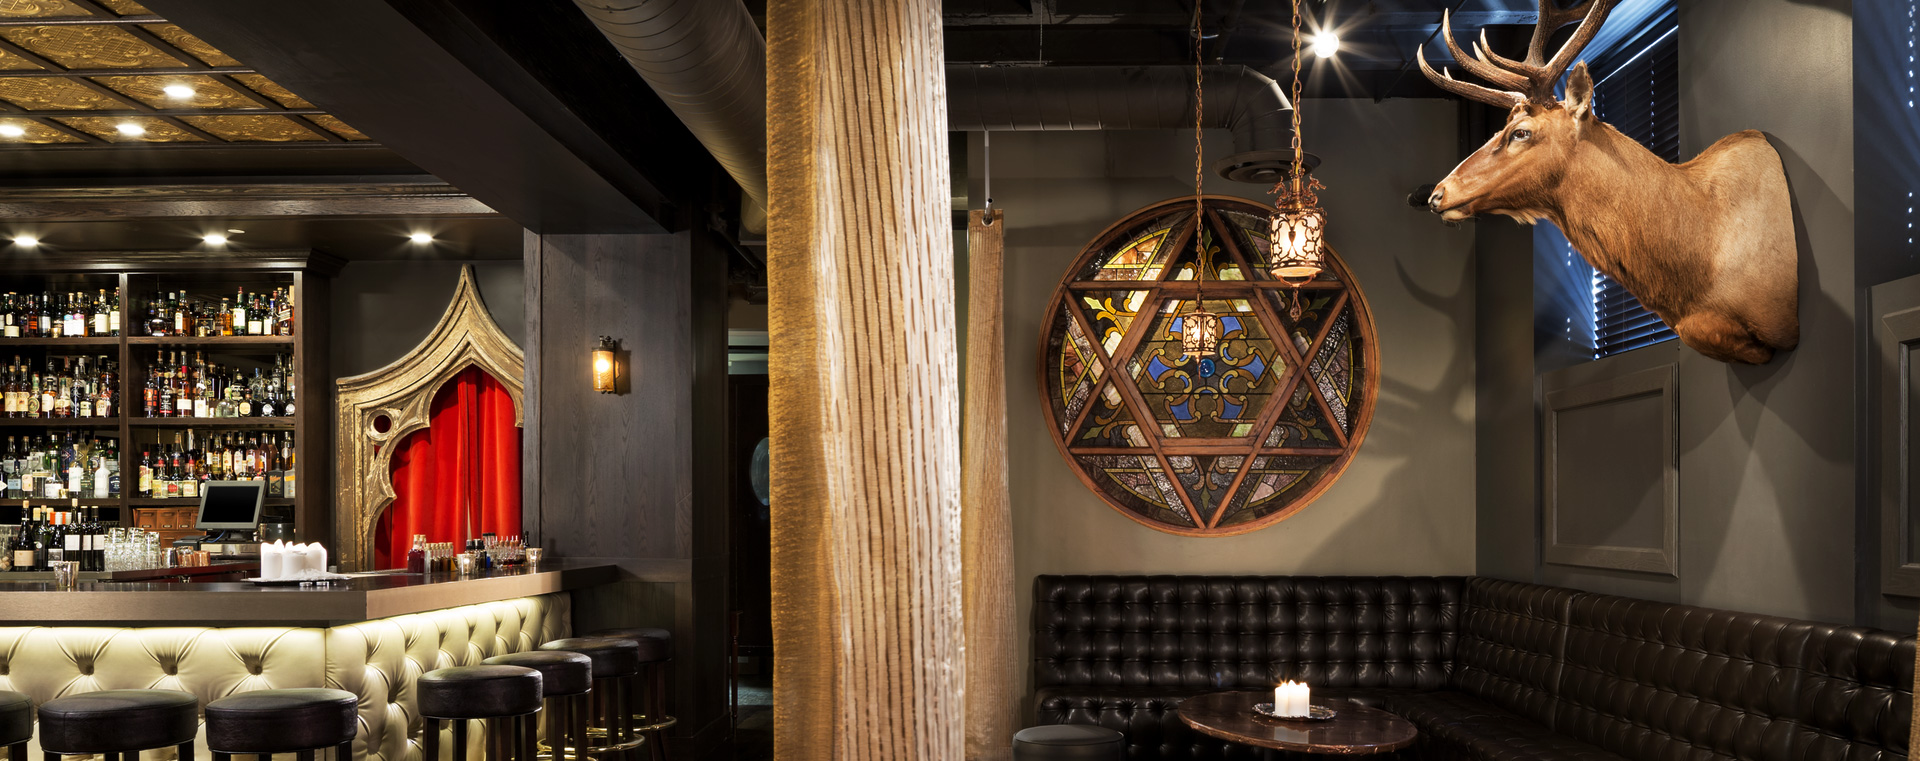 Hotel Ivy, A Luxury Collection Hotel, Minneapolis Constantine